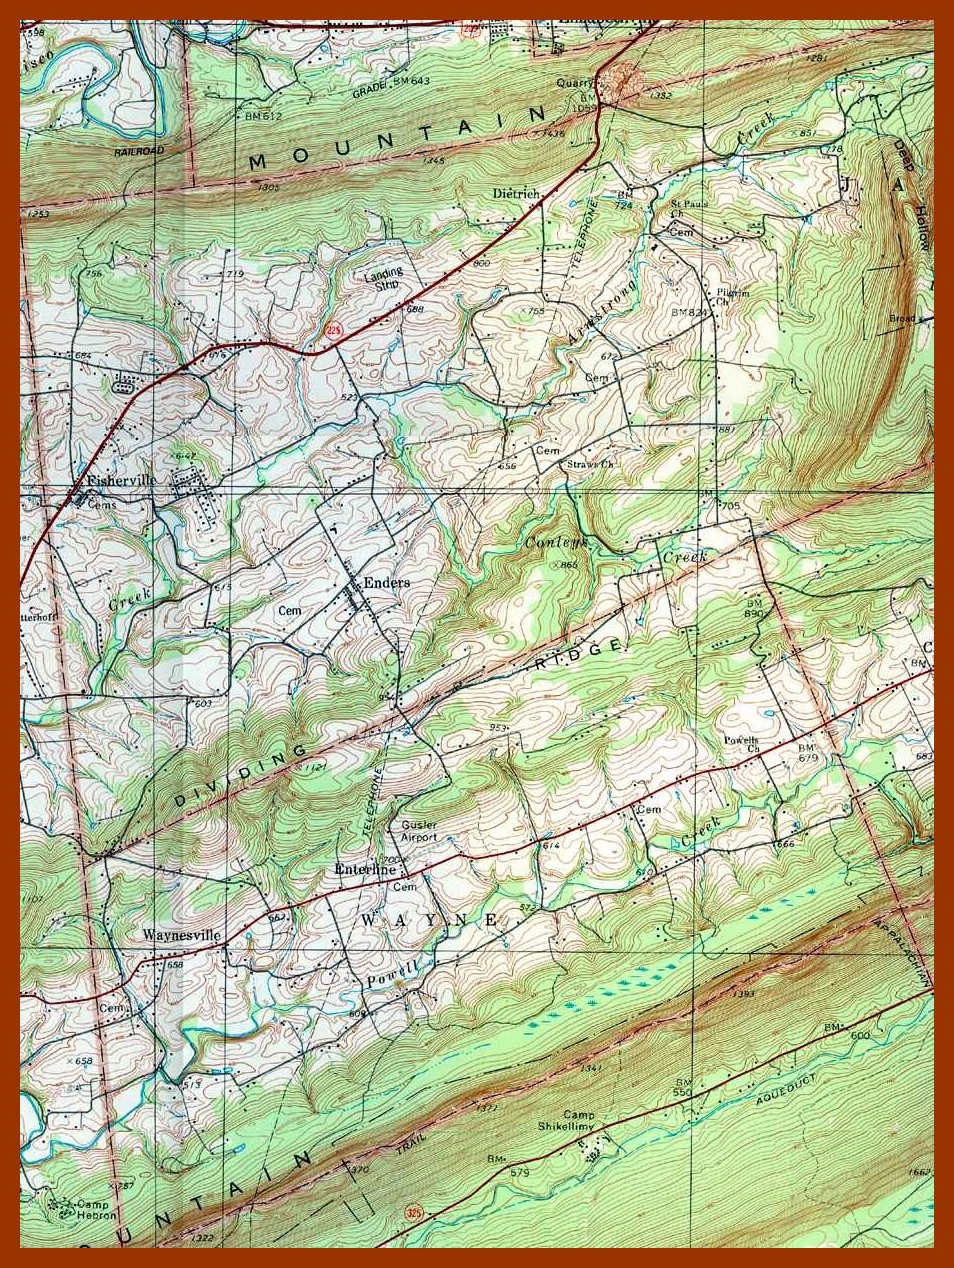 Wayne Township Western Jackson Township Topographical Map